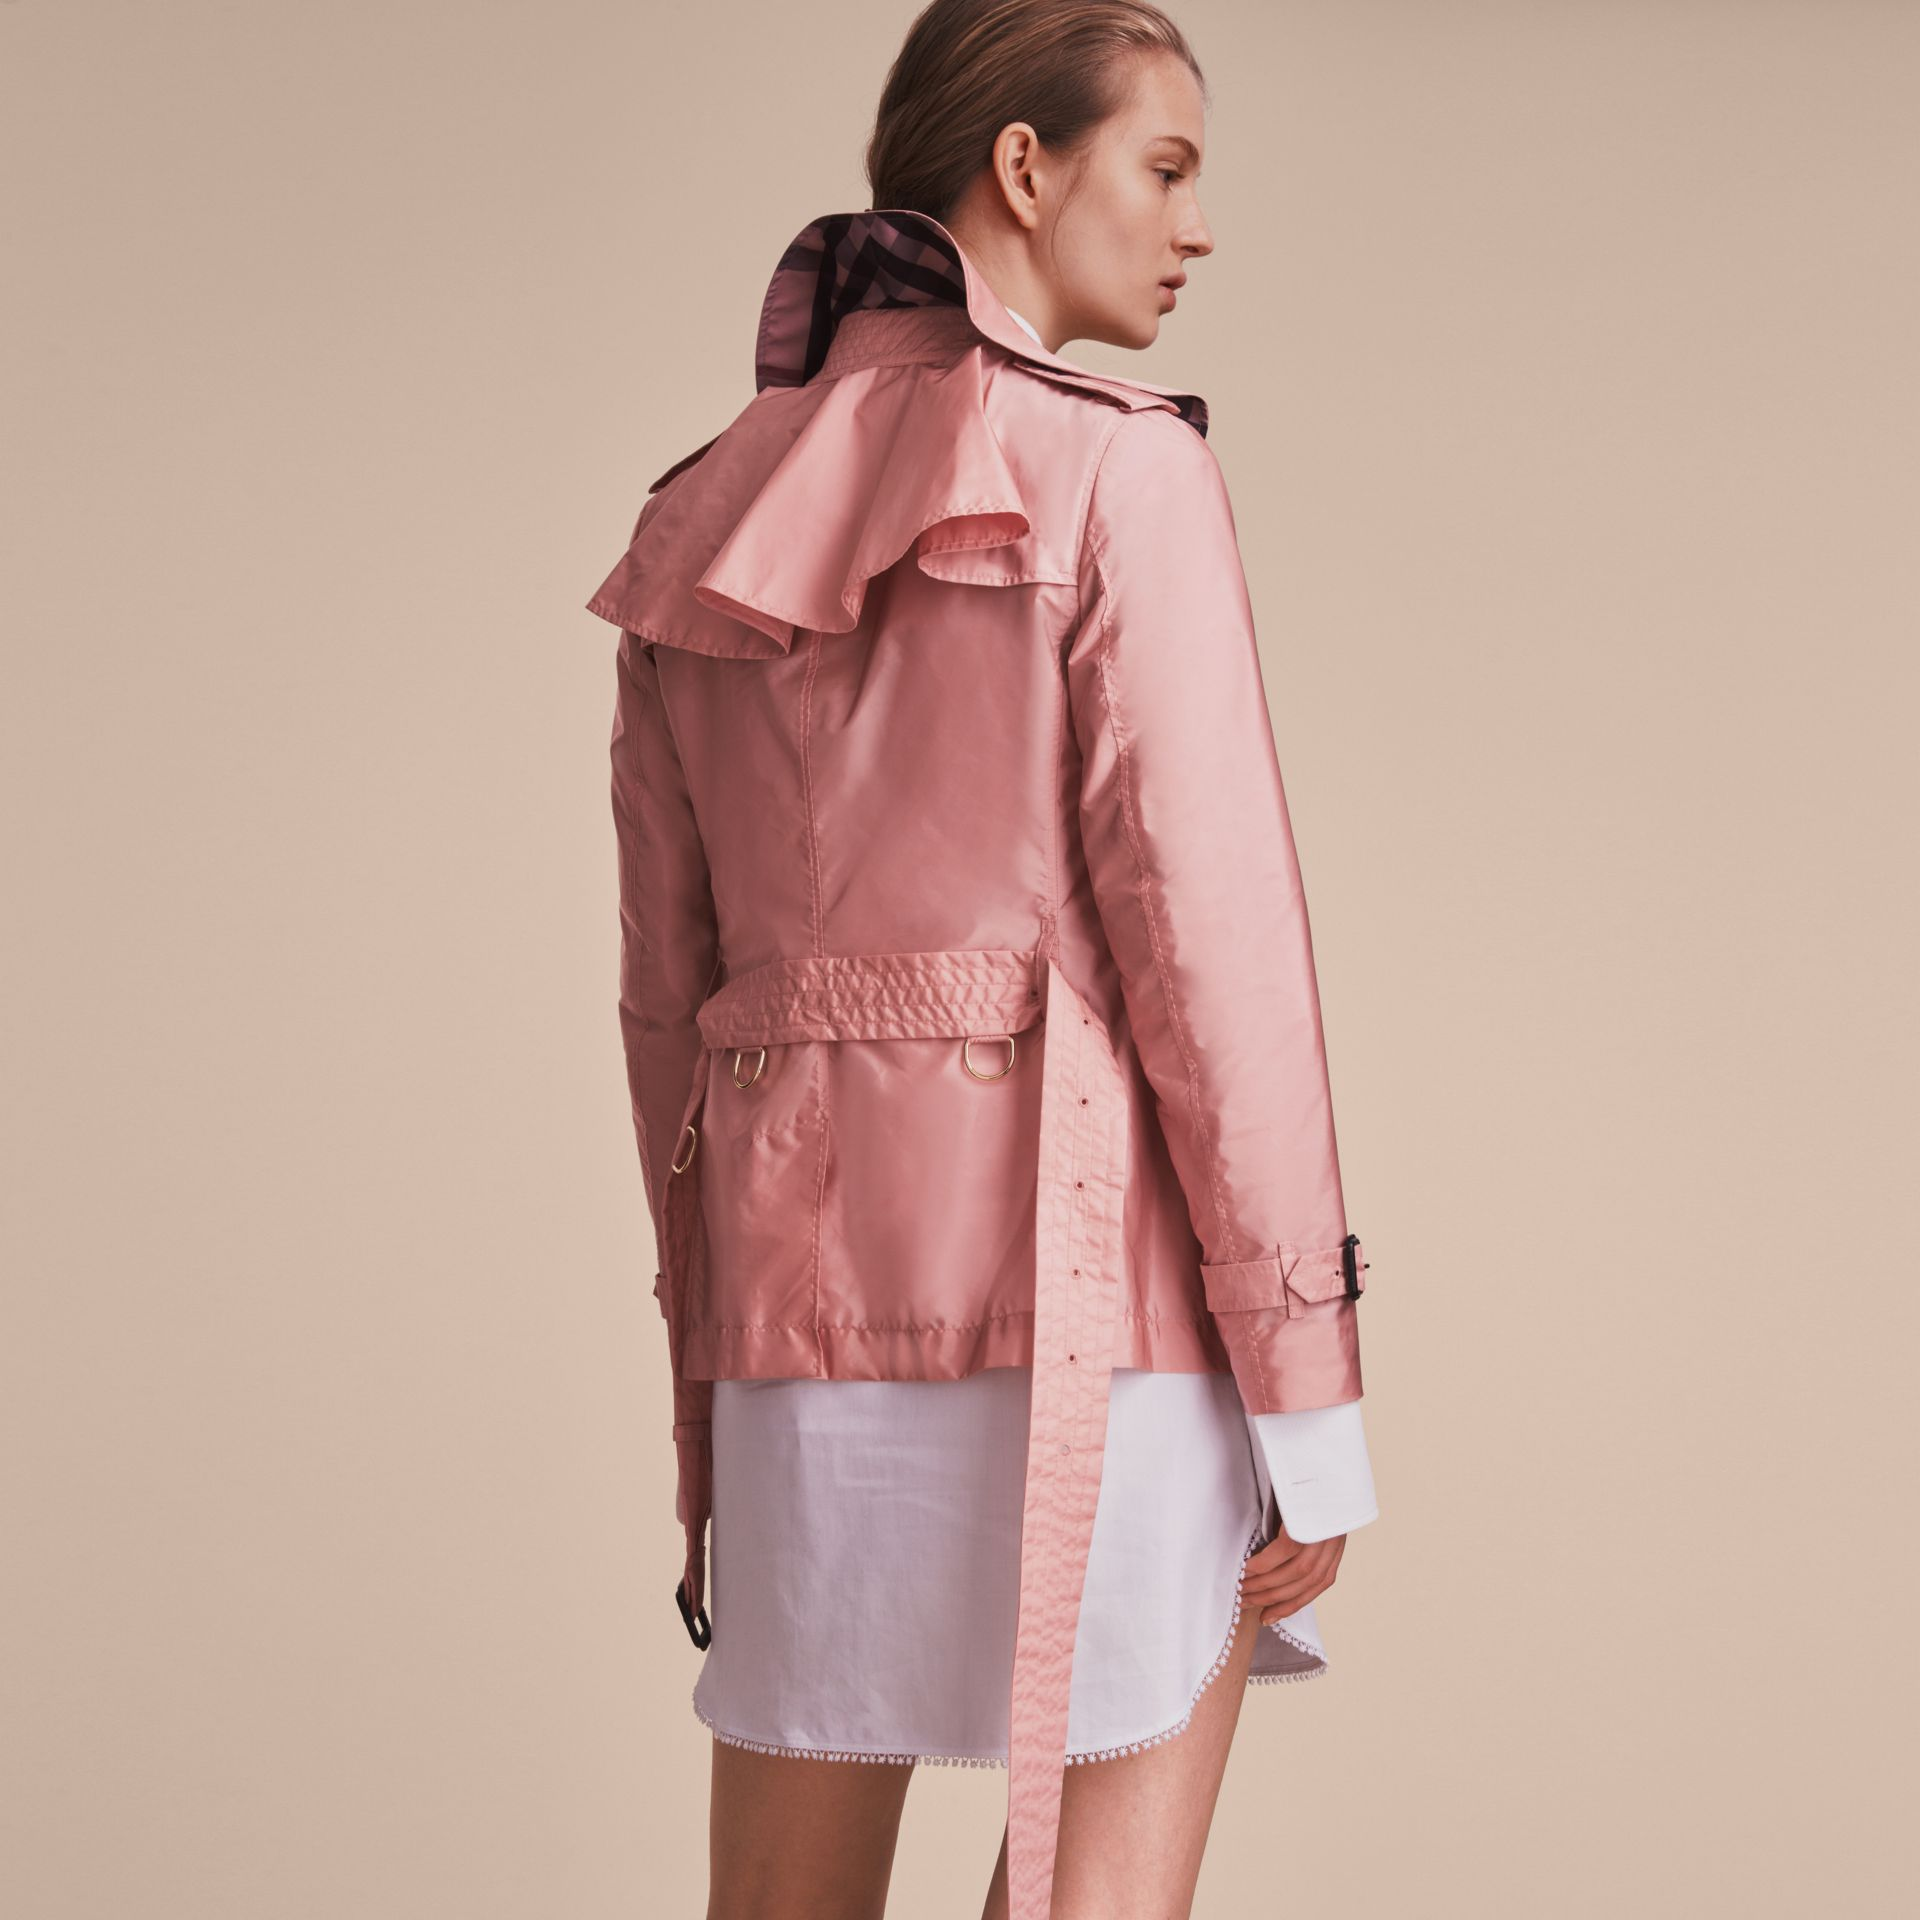 Showerproof Trench Coat in Antique Rose - Women | Burberry United Kingdom - gallery image 3